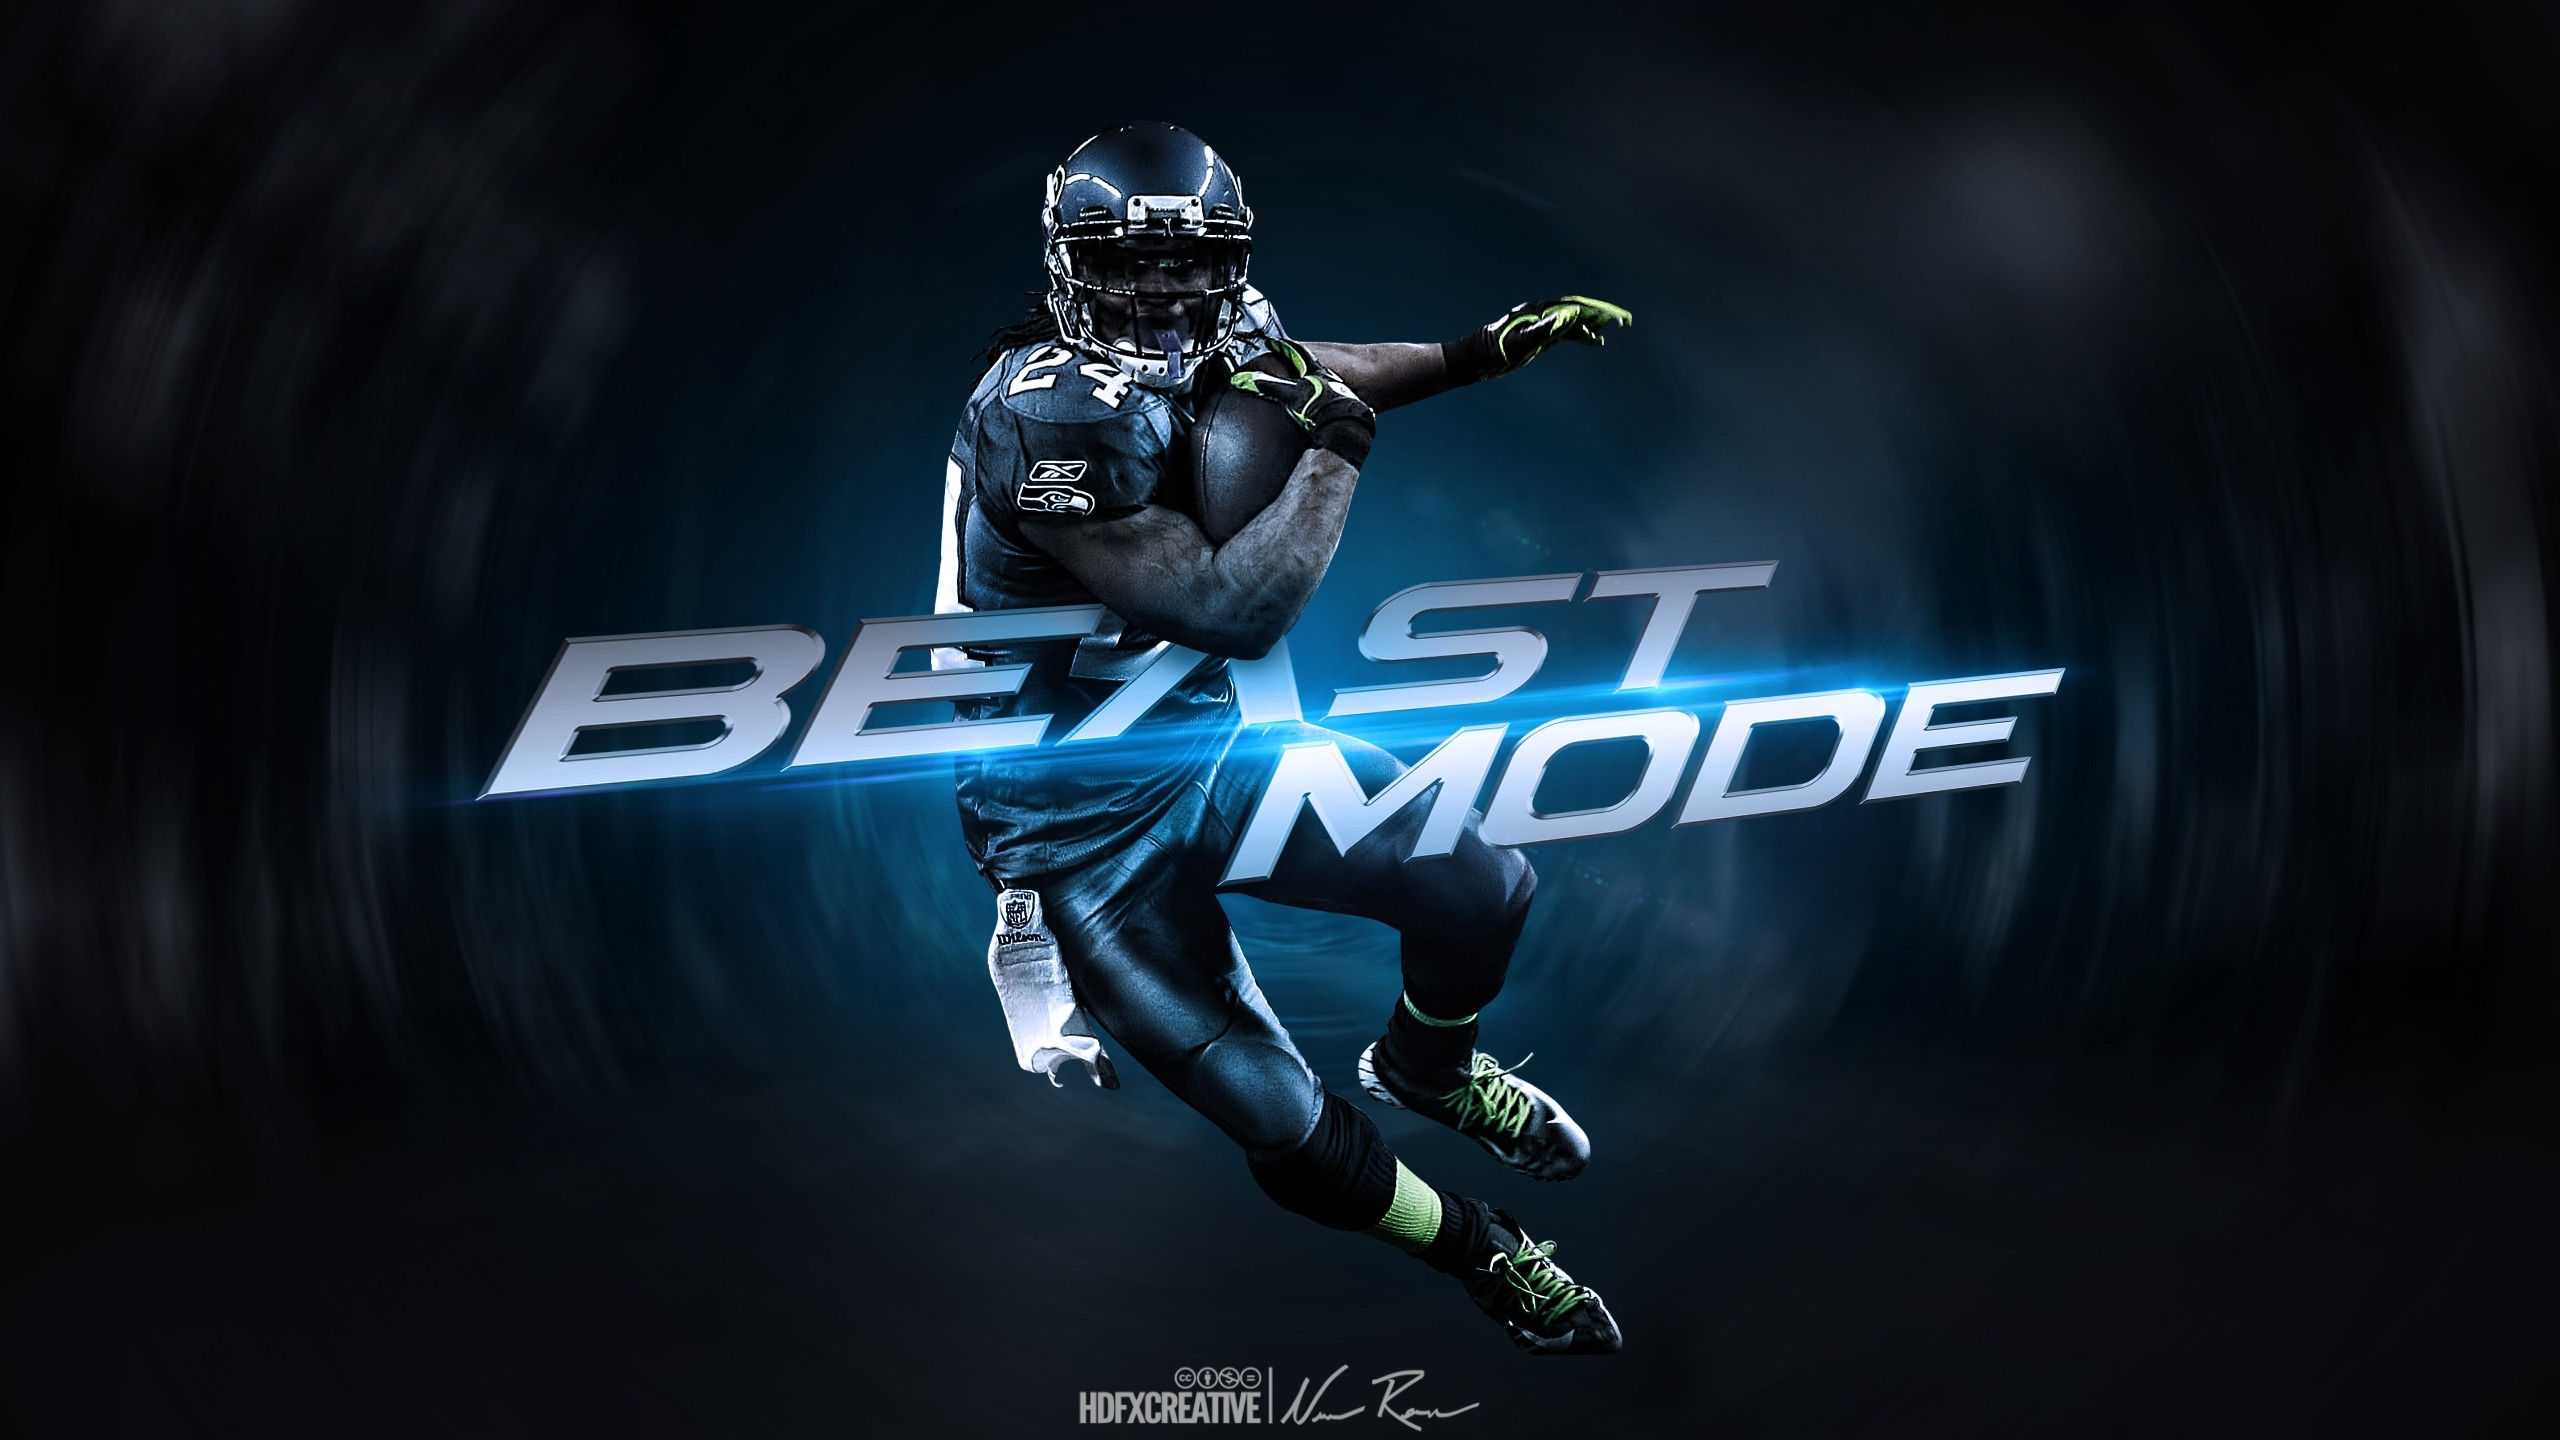 marshawn lynch wallpaper (84+ images)